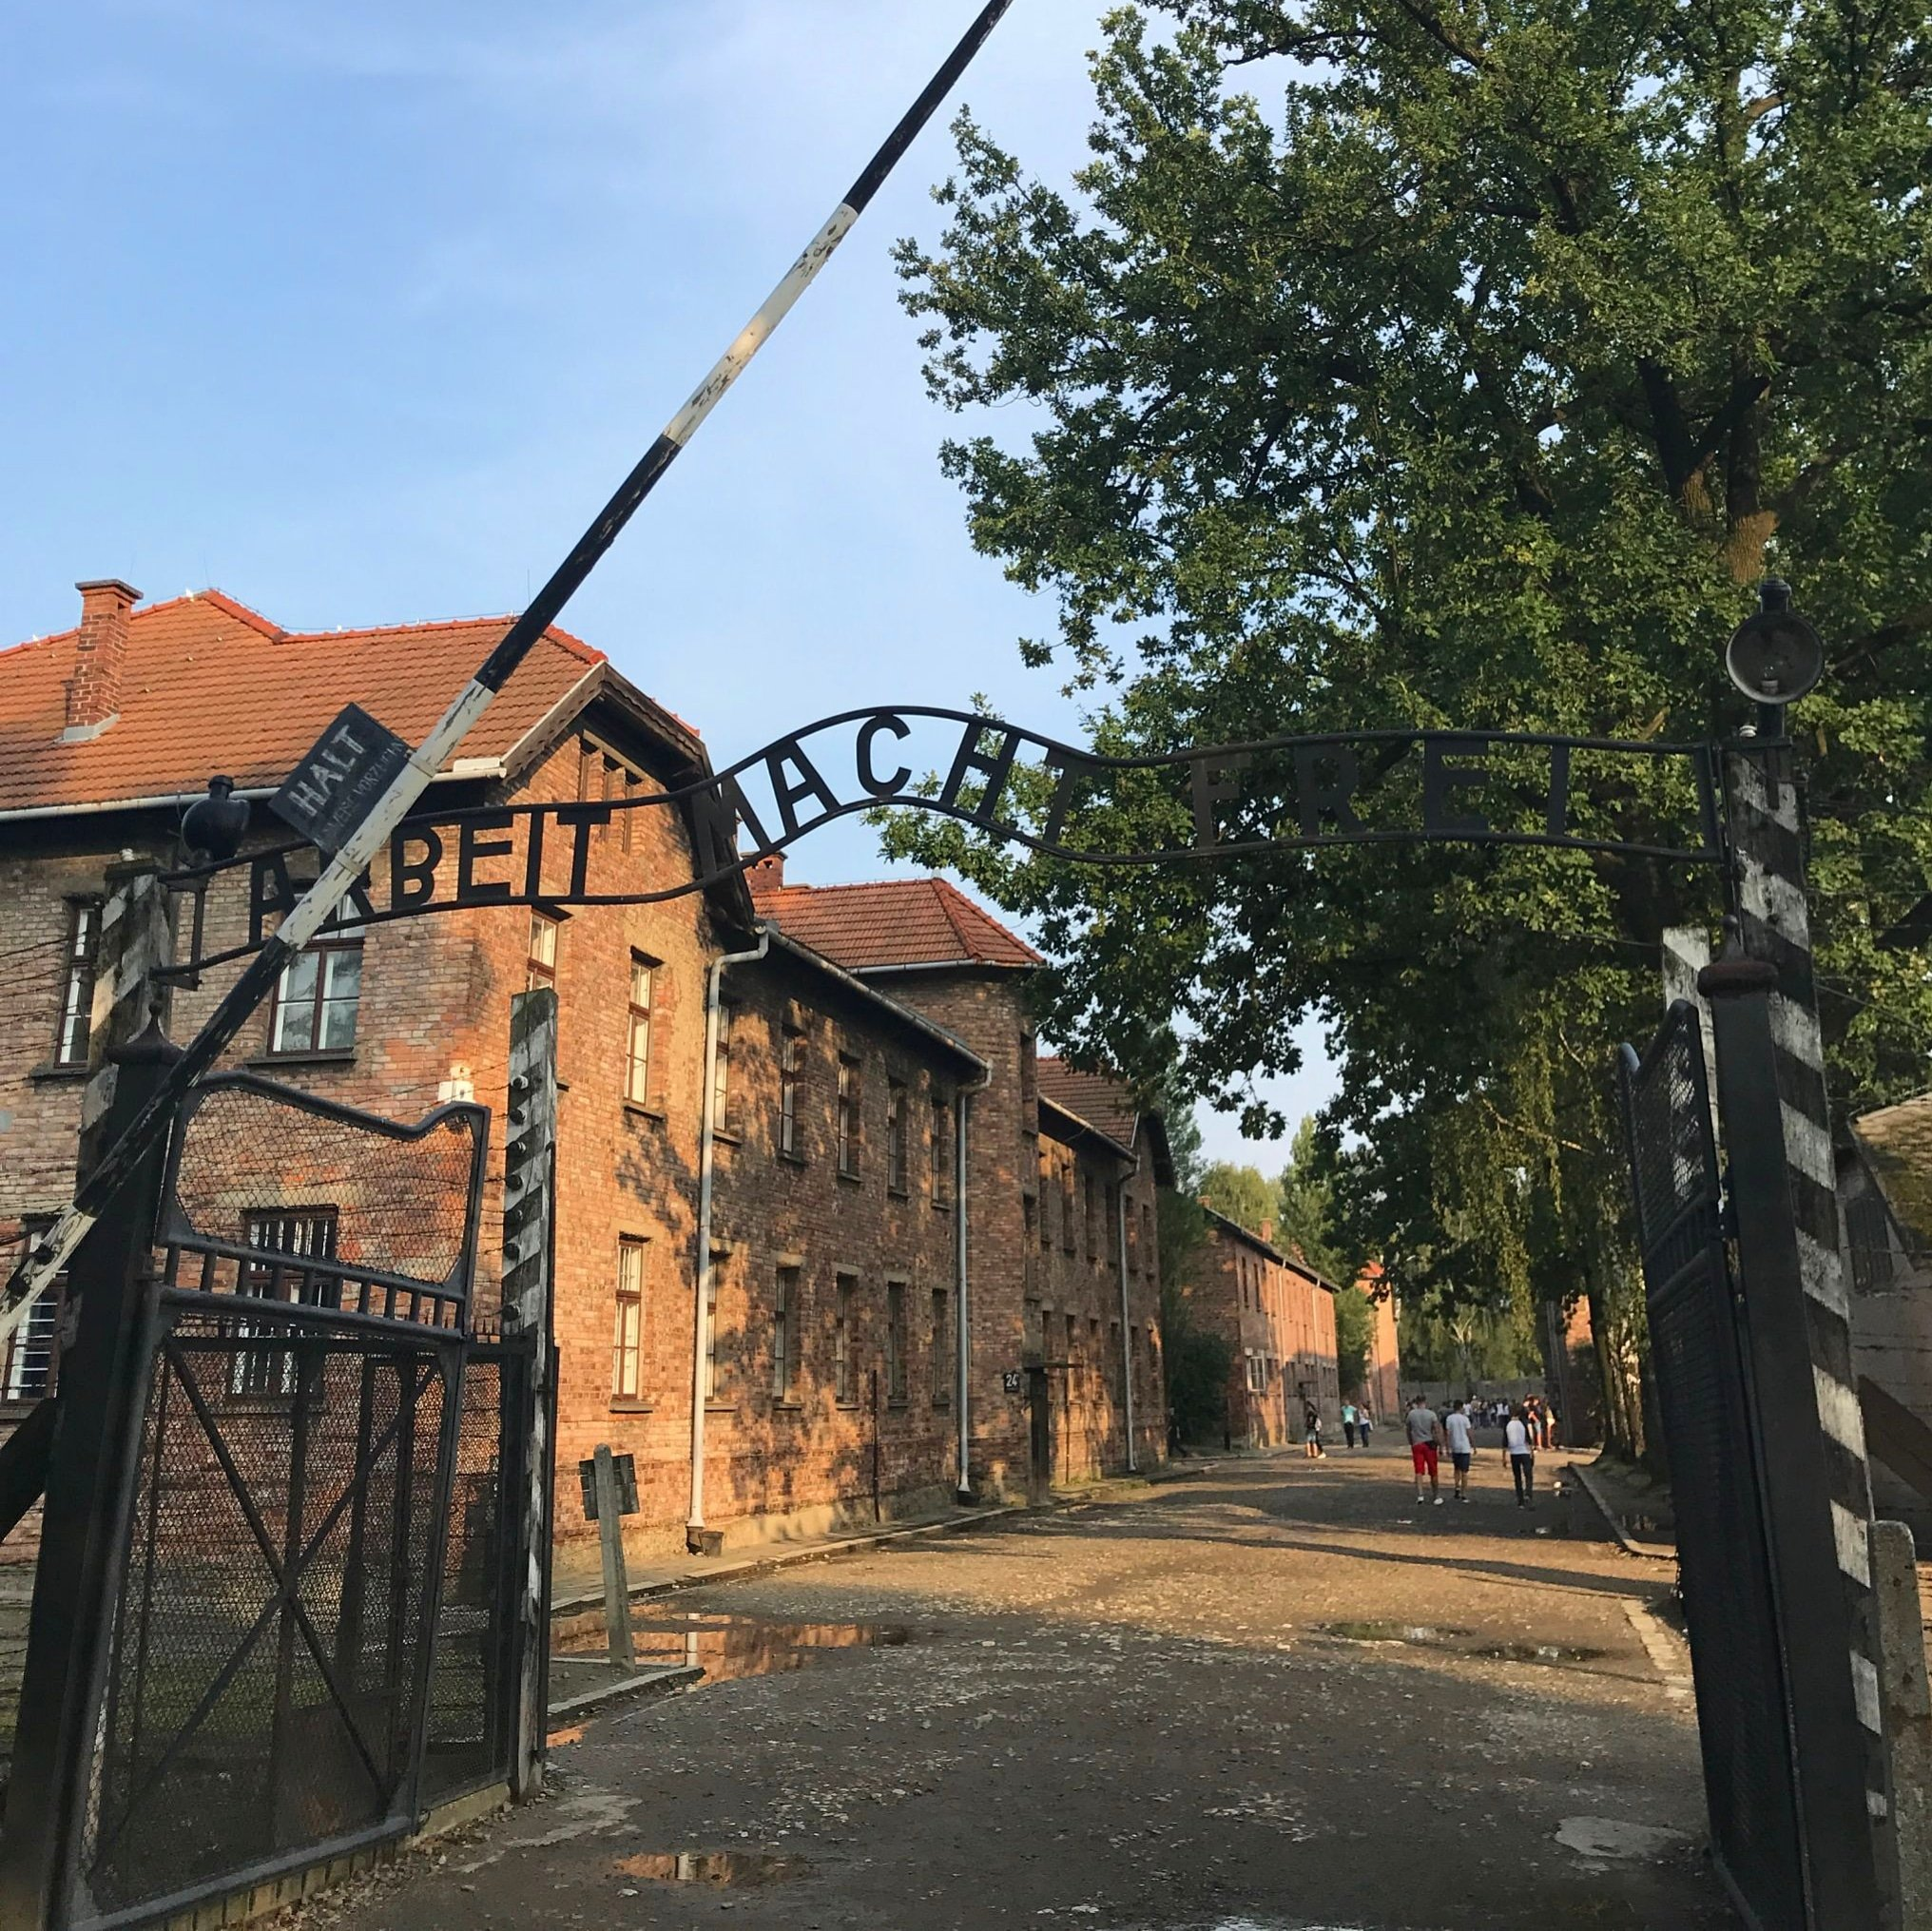 auschwitz, Poland, concentration camps, Poland